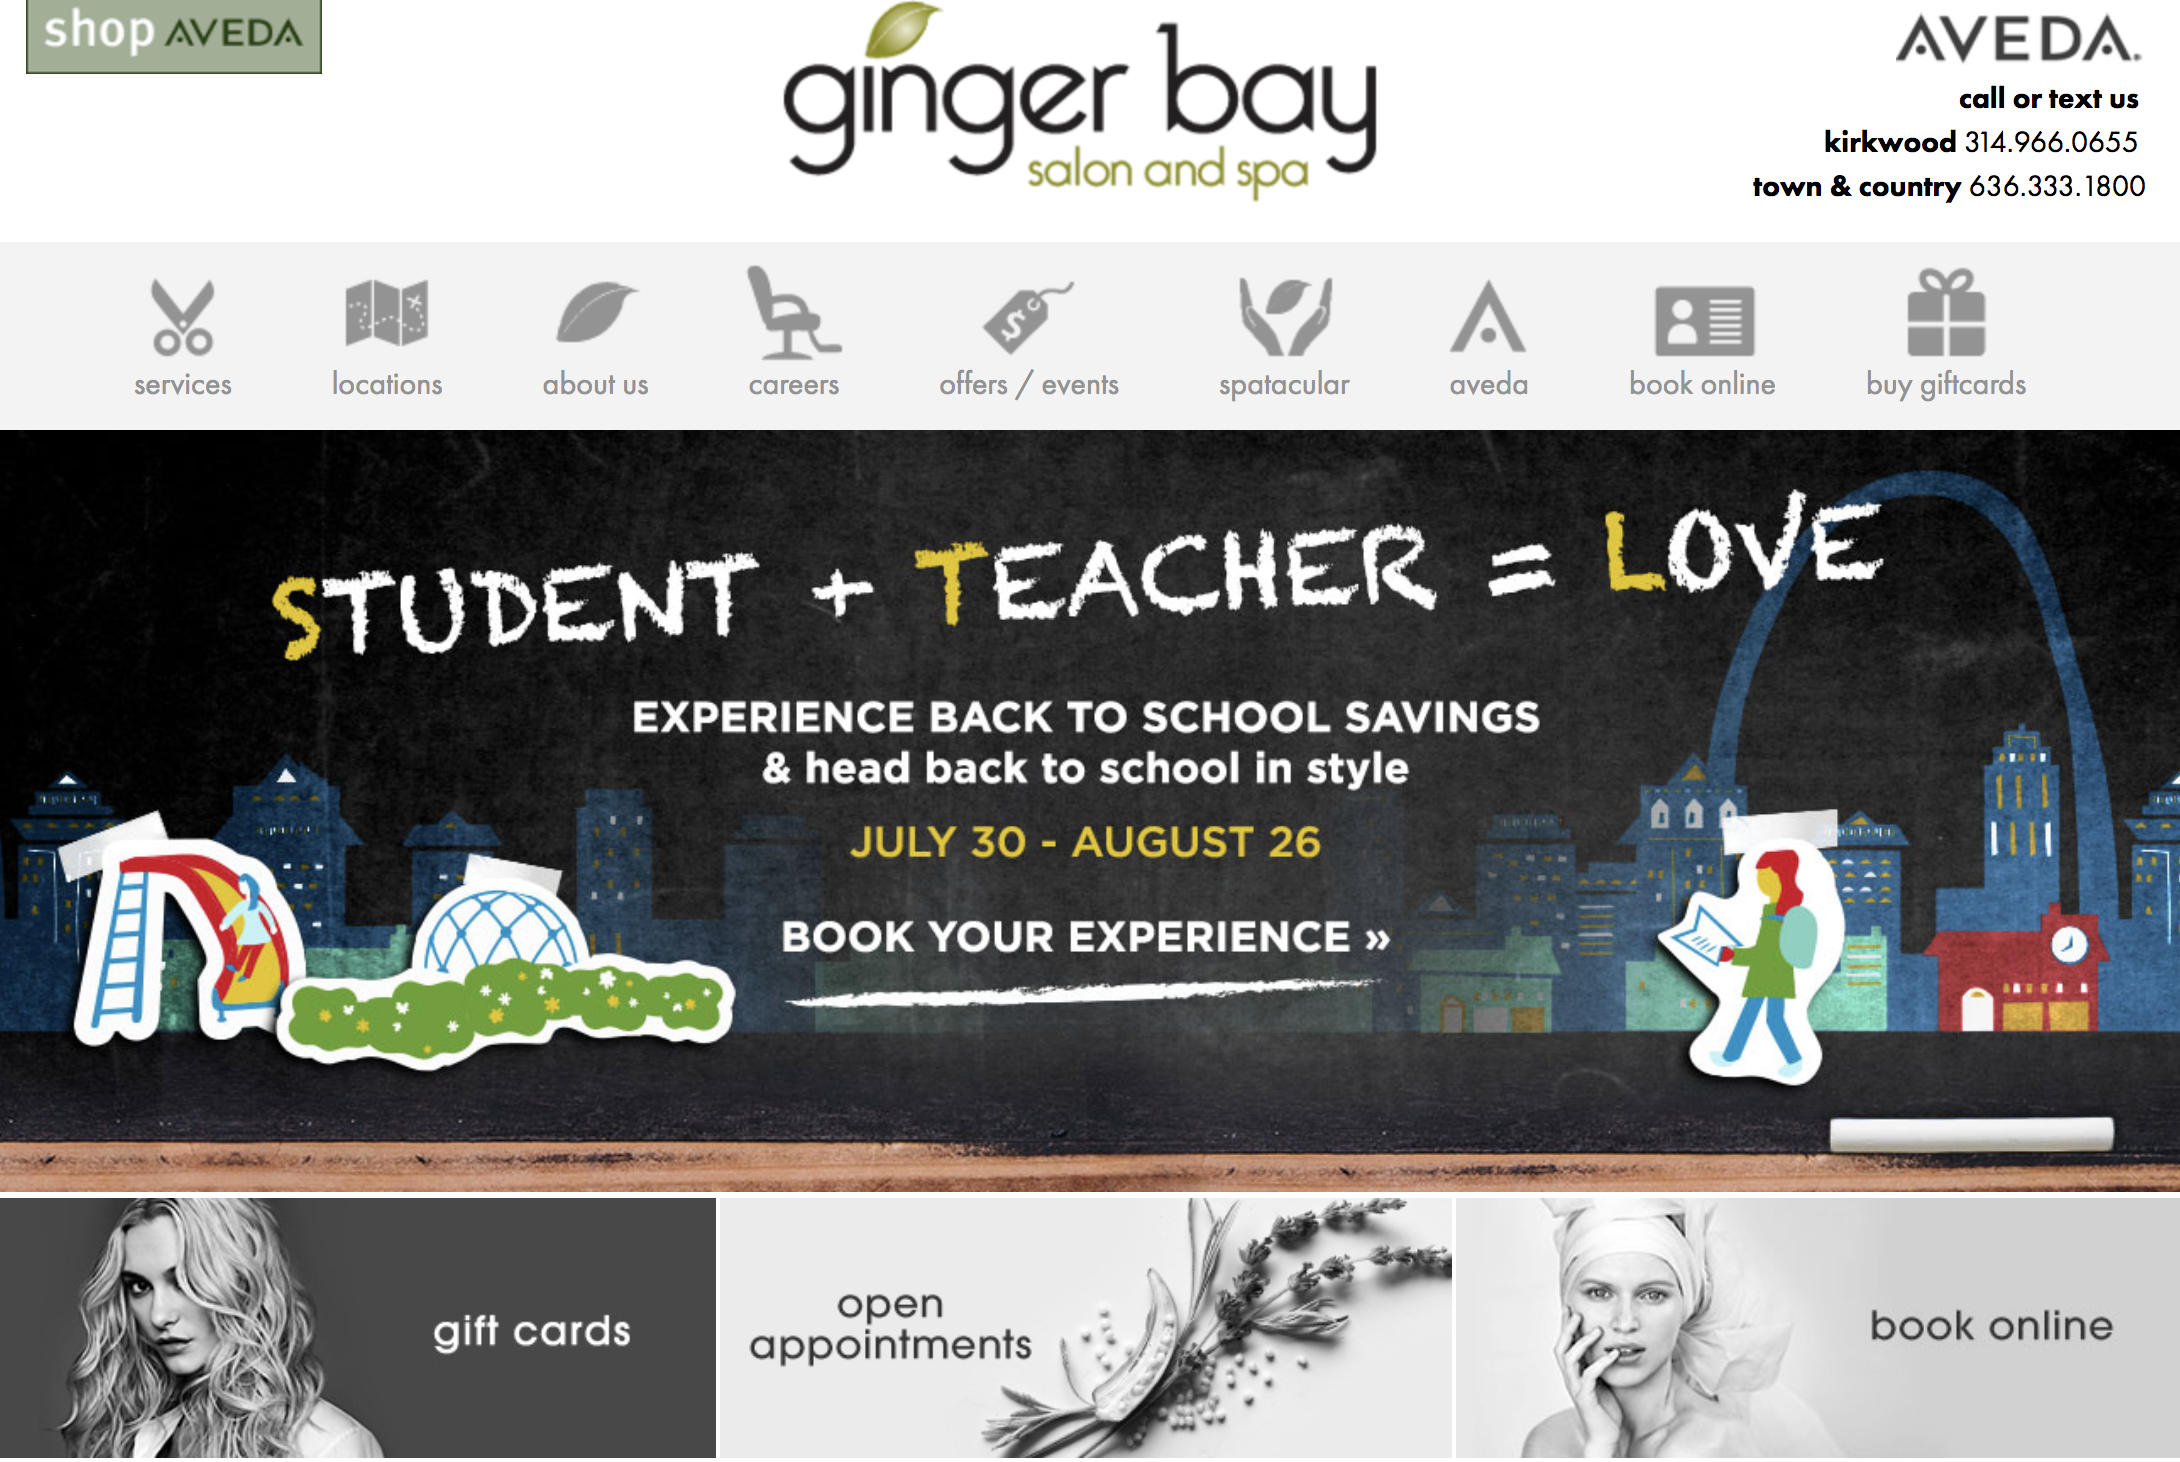 ginger bay gift cards homepage